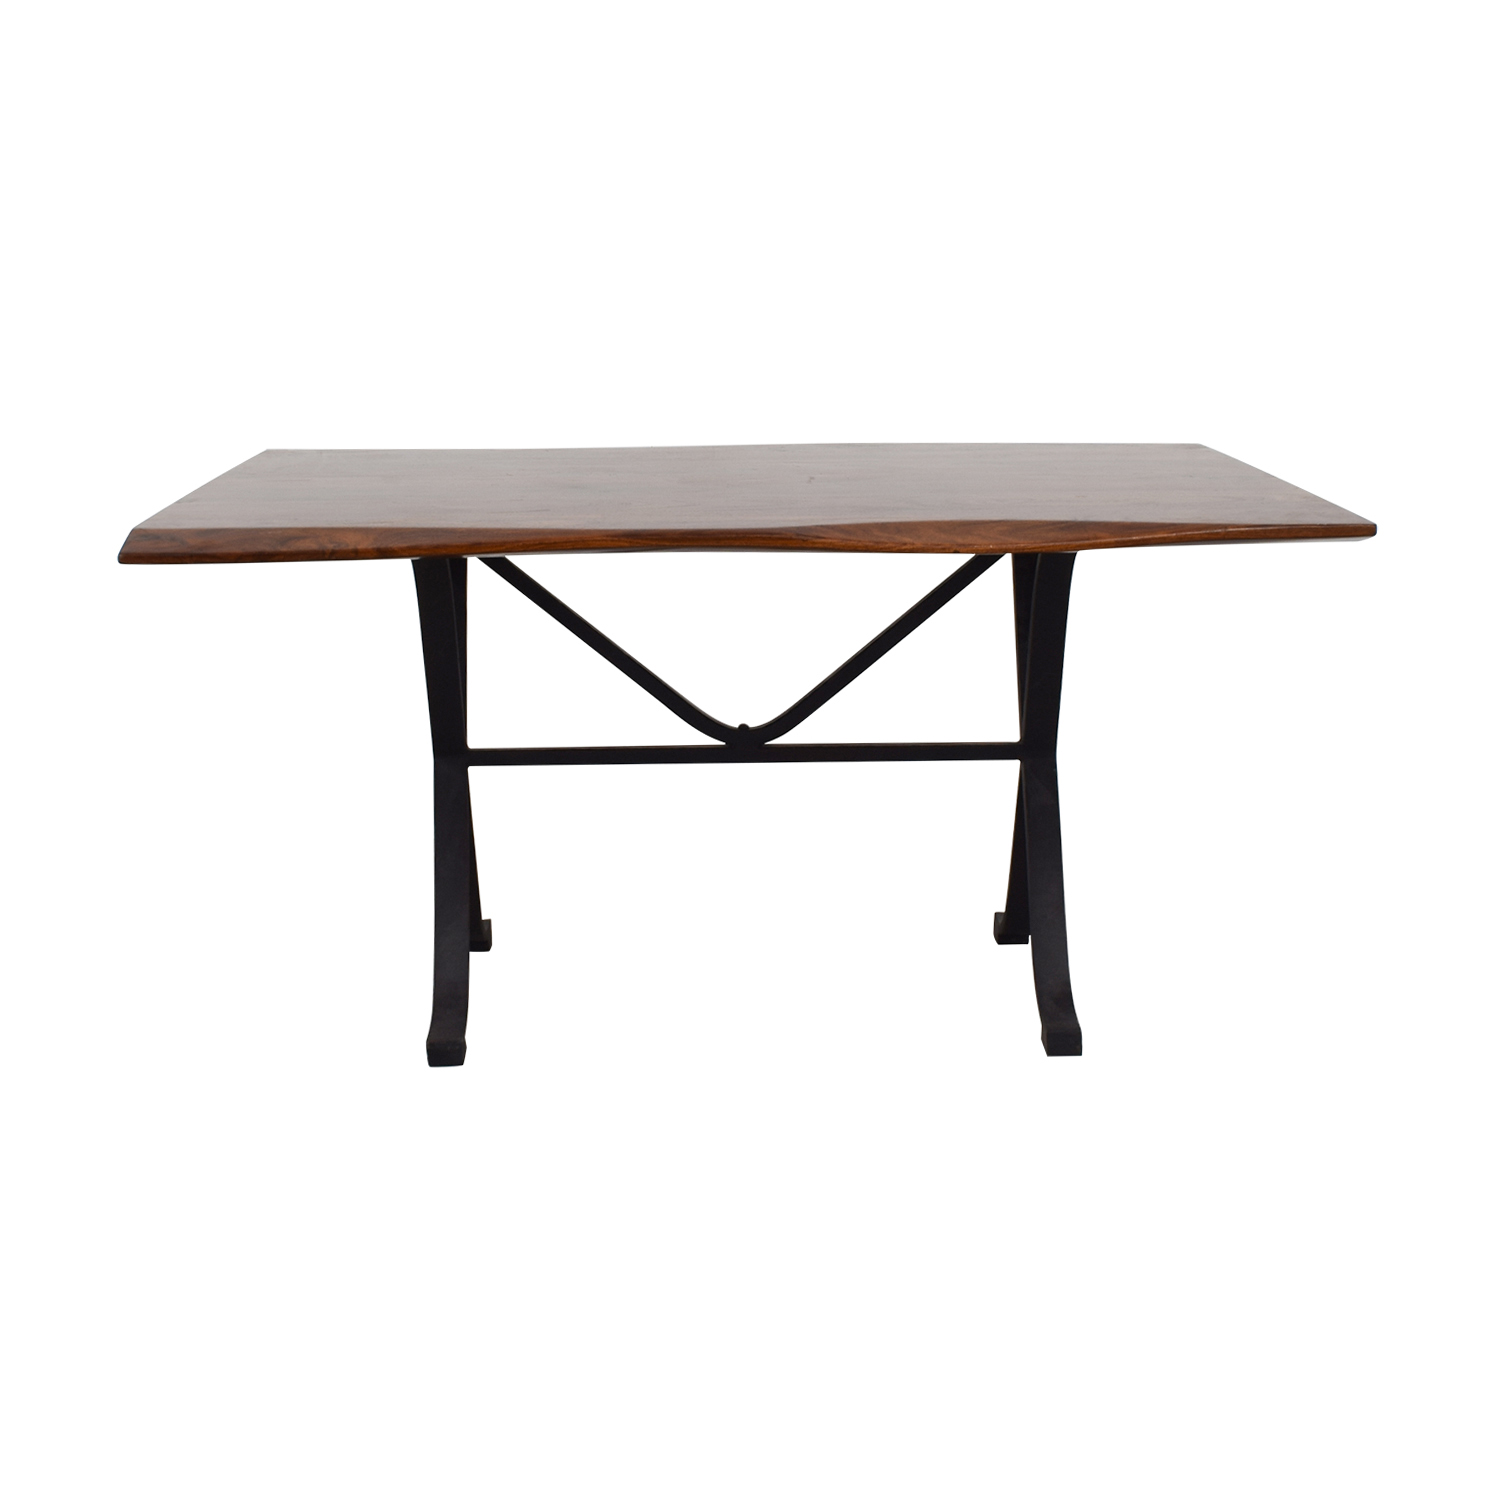 Arhaus Arhaus Wave Wood Dining Table price